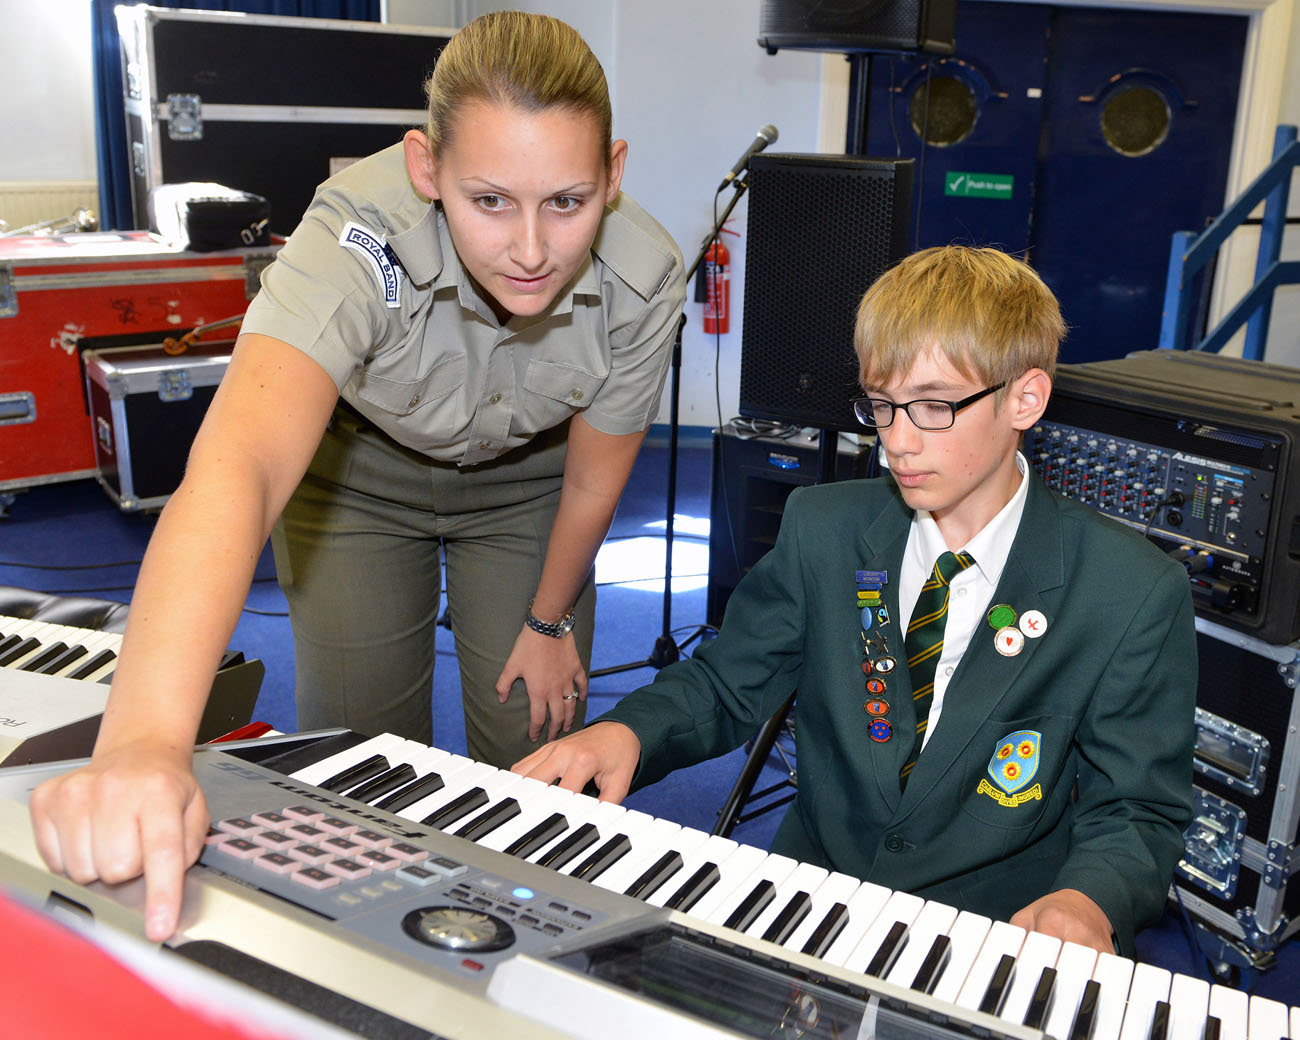 Schoolchildren rub shoulders with world-class military musicians